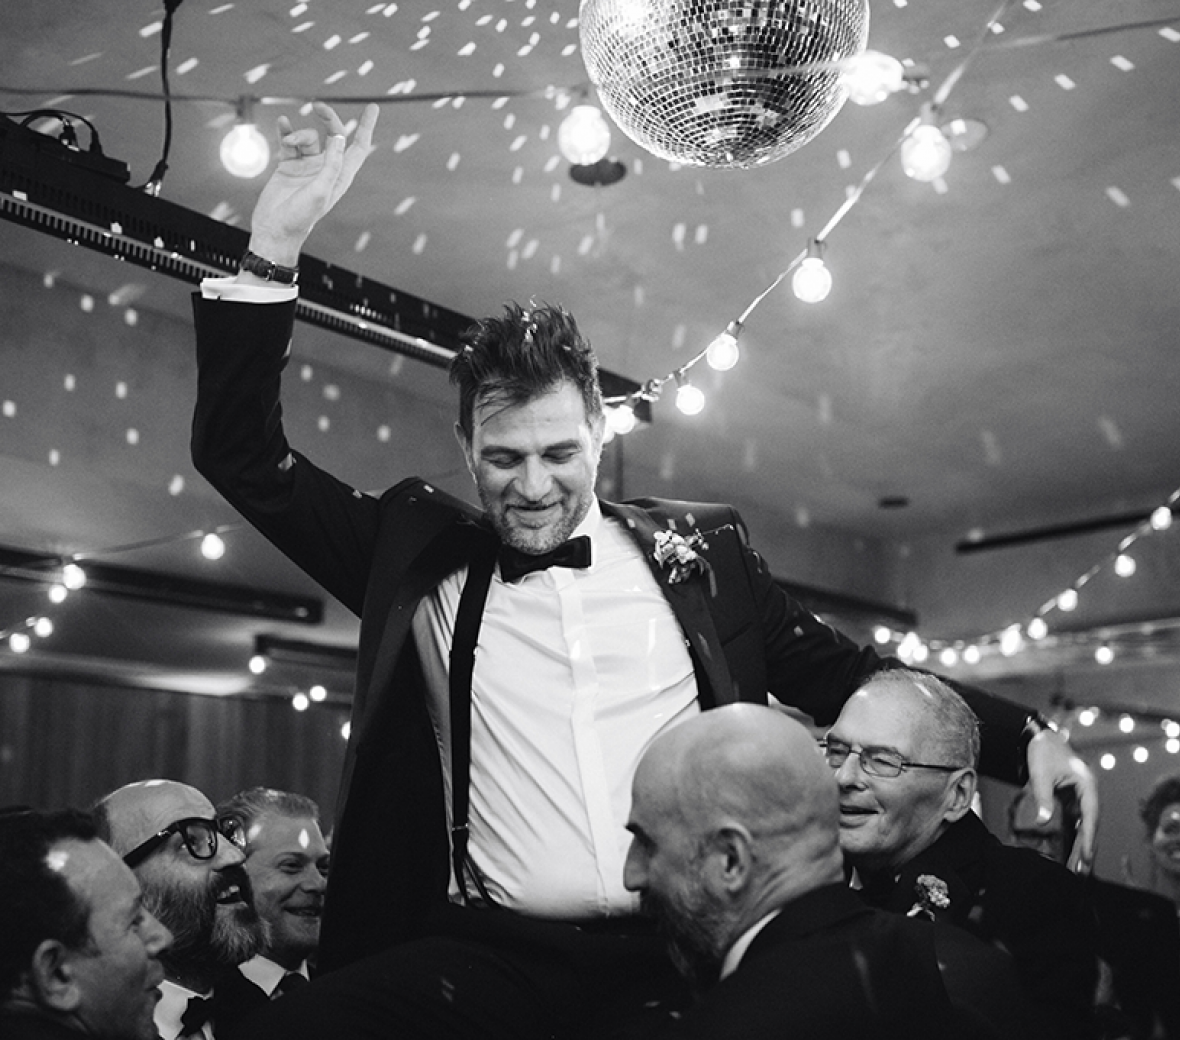 A black and white photo of a groom celebrating on the dance floor.